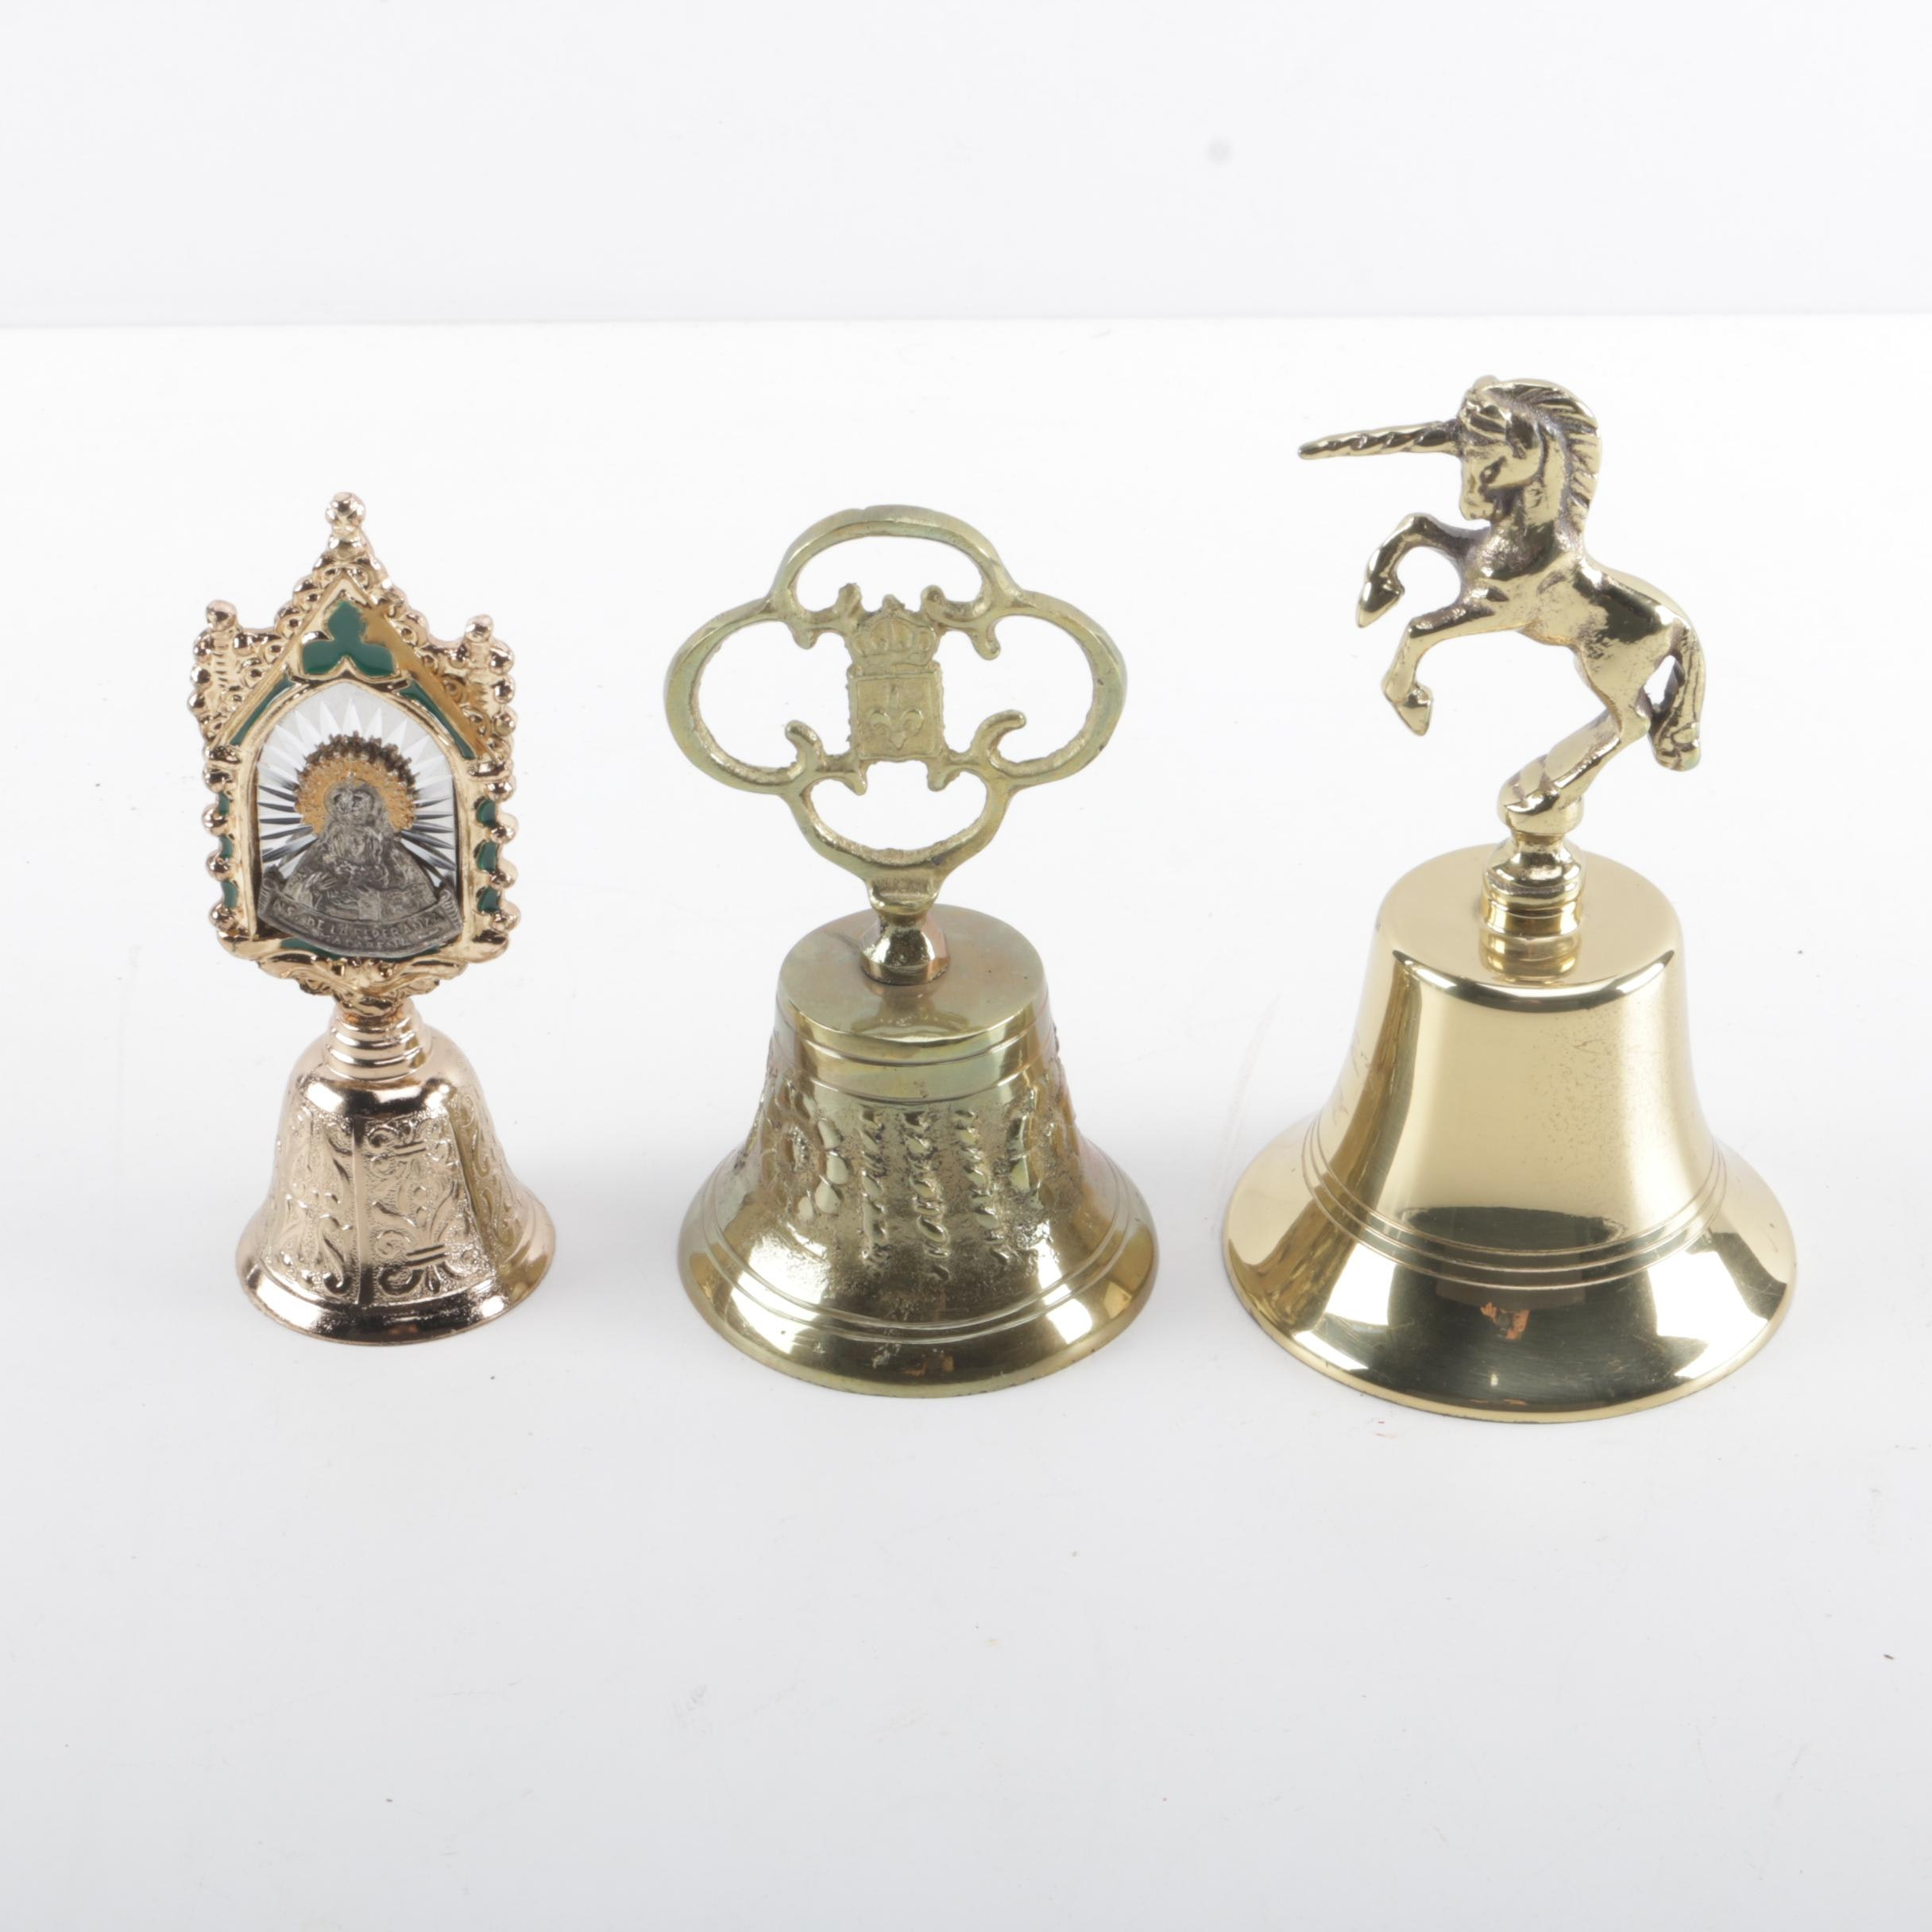 Collection of Decorative Brass Bells